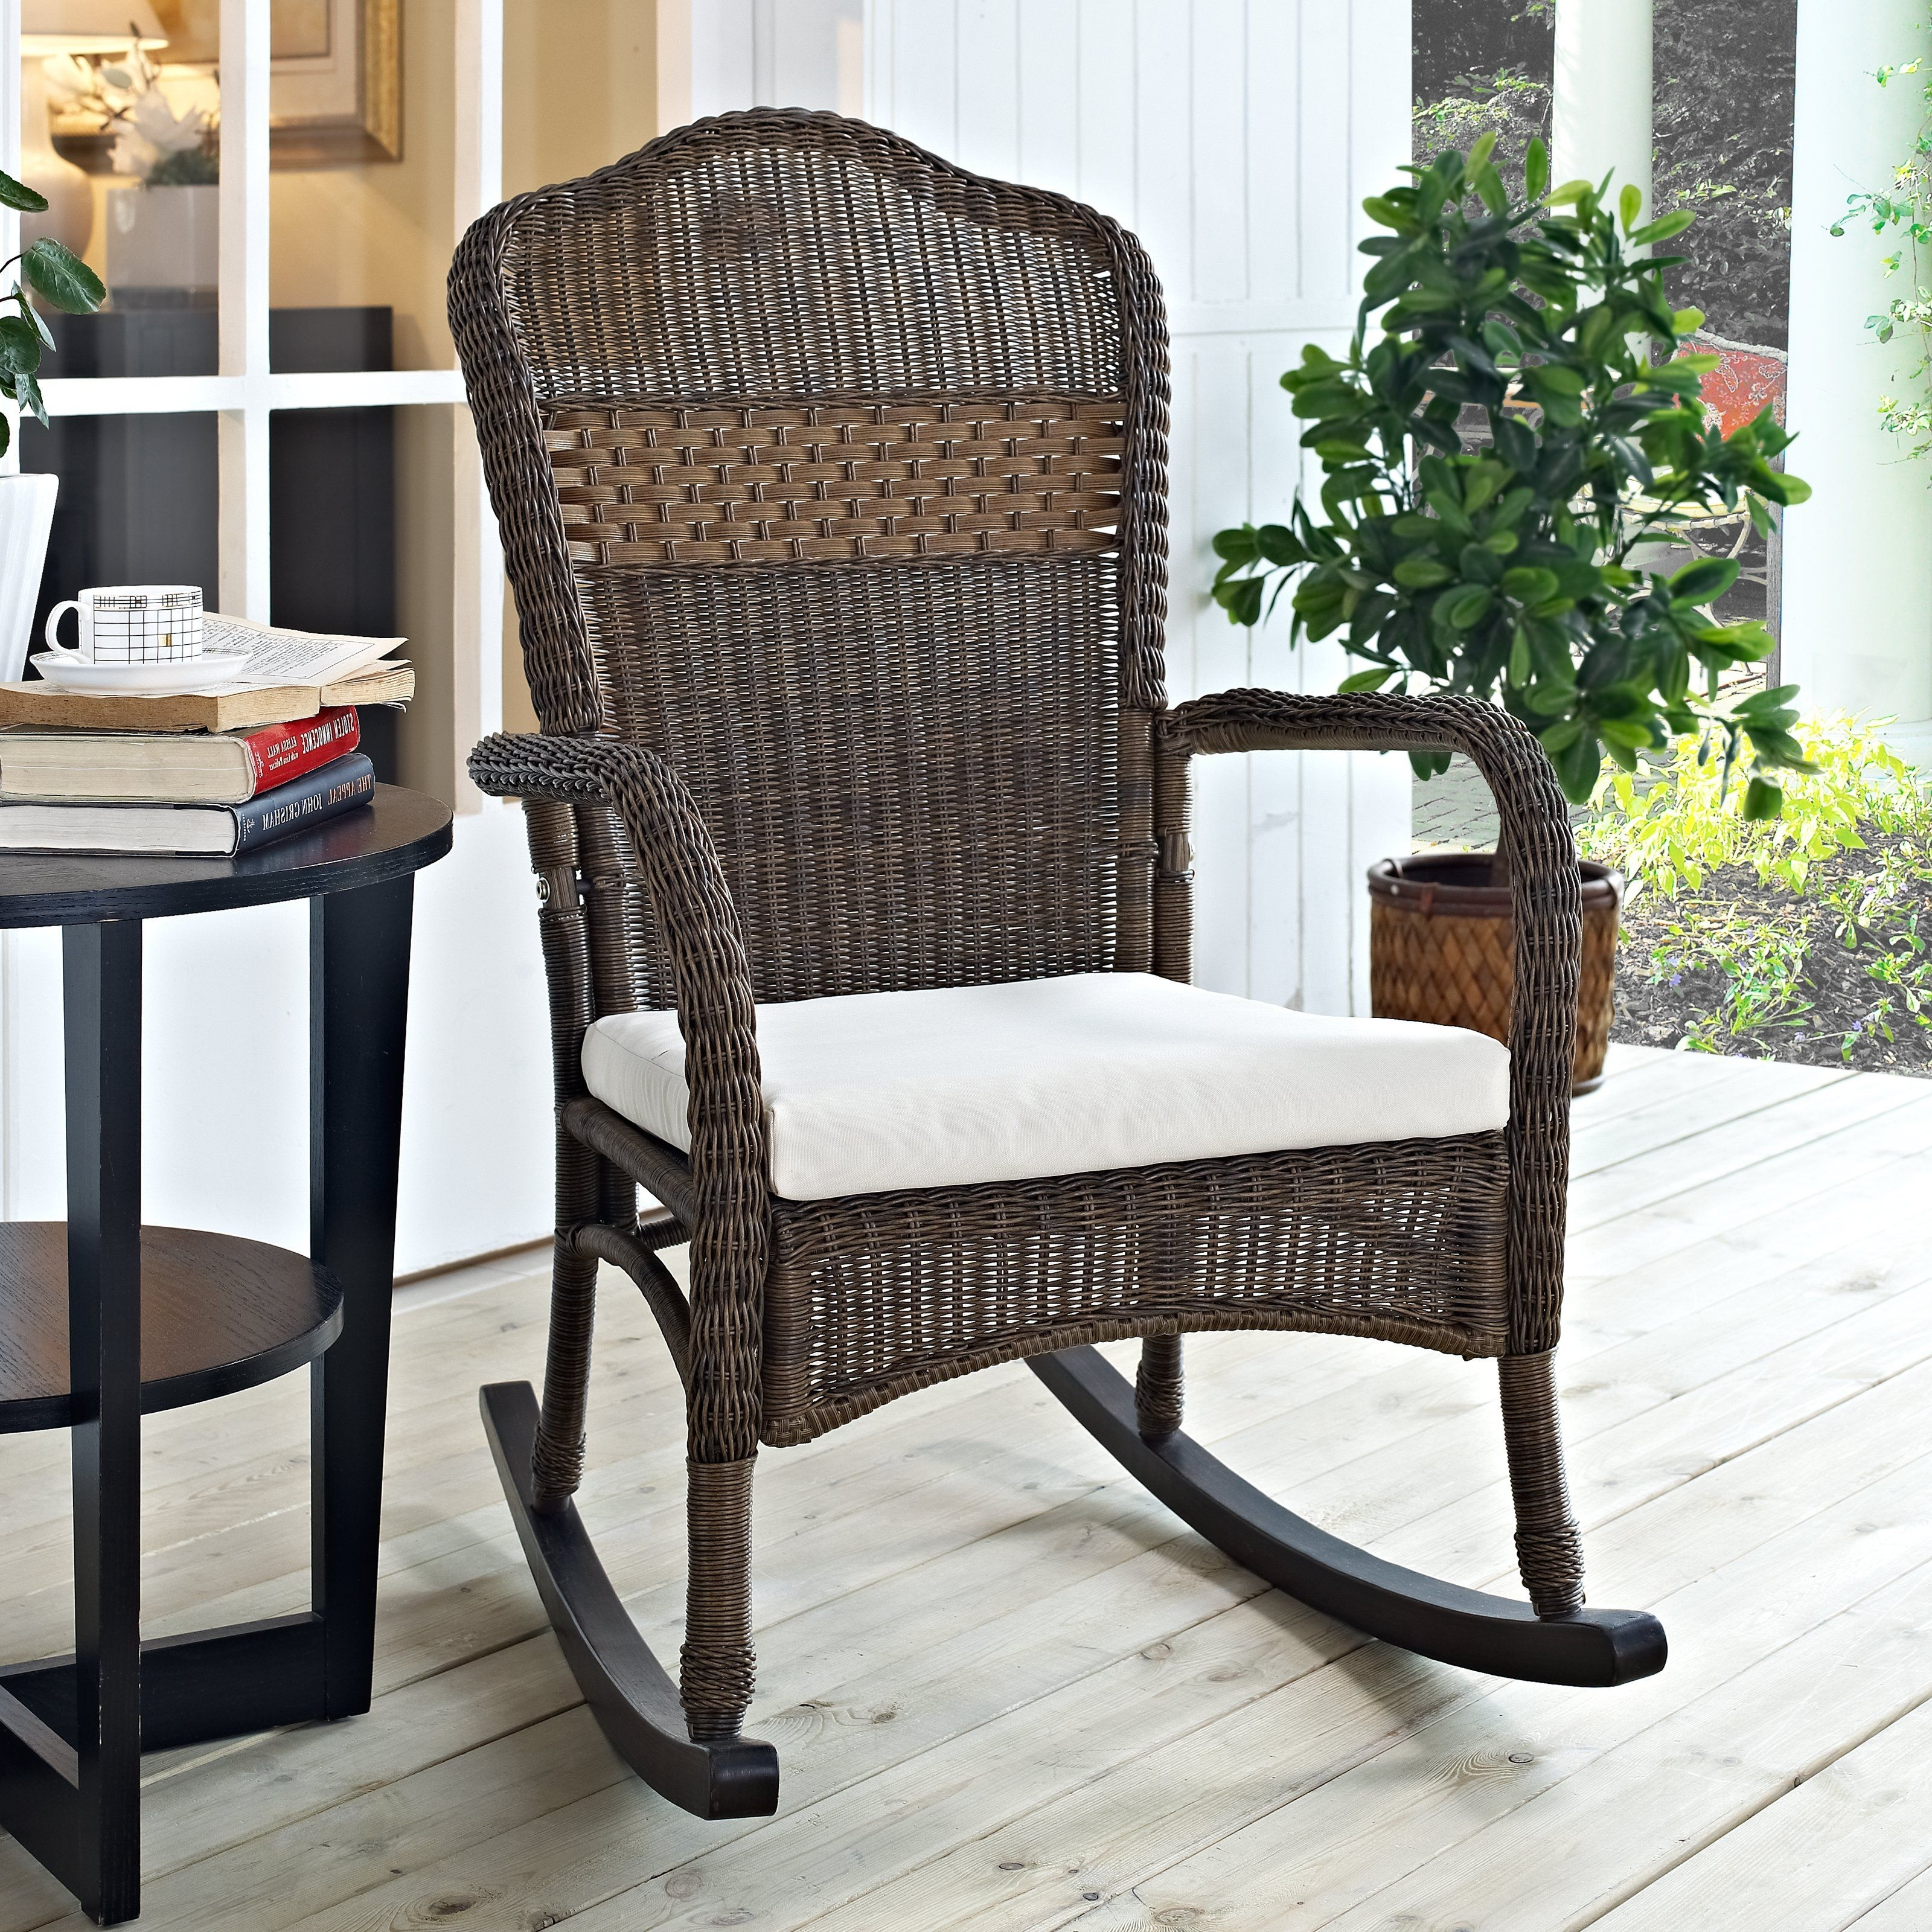 Favorite Outdoor Coral Coast Mocha Resin Wicker Rocking Chair With Beige With Wicker Rocking Chairs For Outdoors (View 3 of 15)